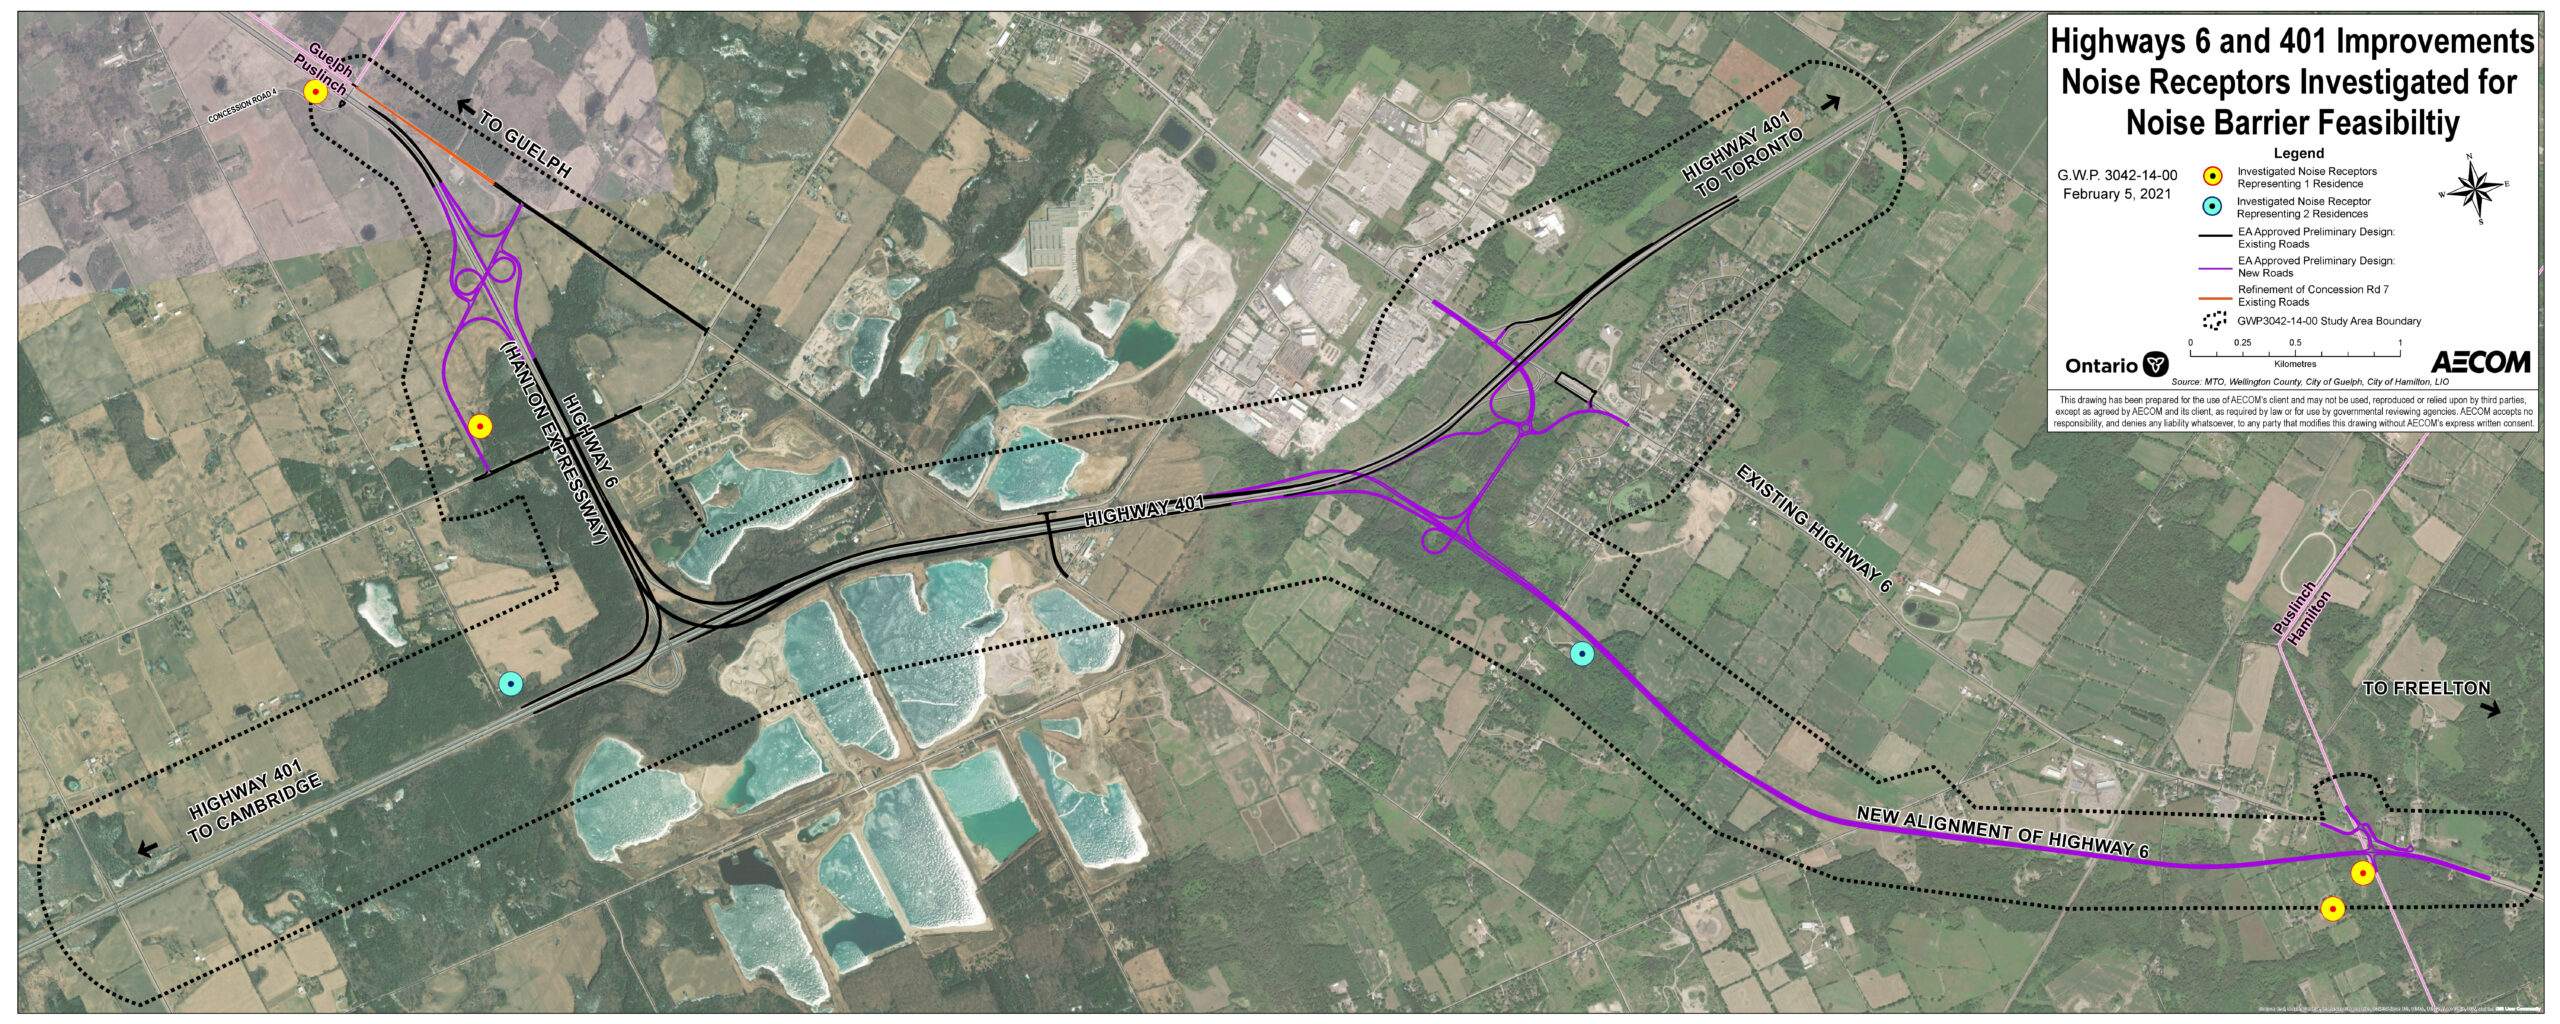 Aerial Map showing the Noise Receptors Investigated for Noise Barrier Feasibility. For more information on the Noise Impact Assessment Findings contact the Project Team.